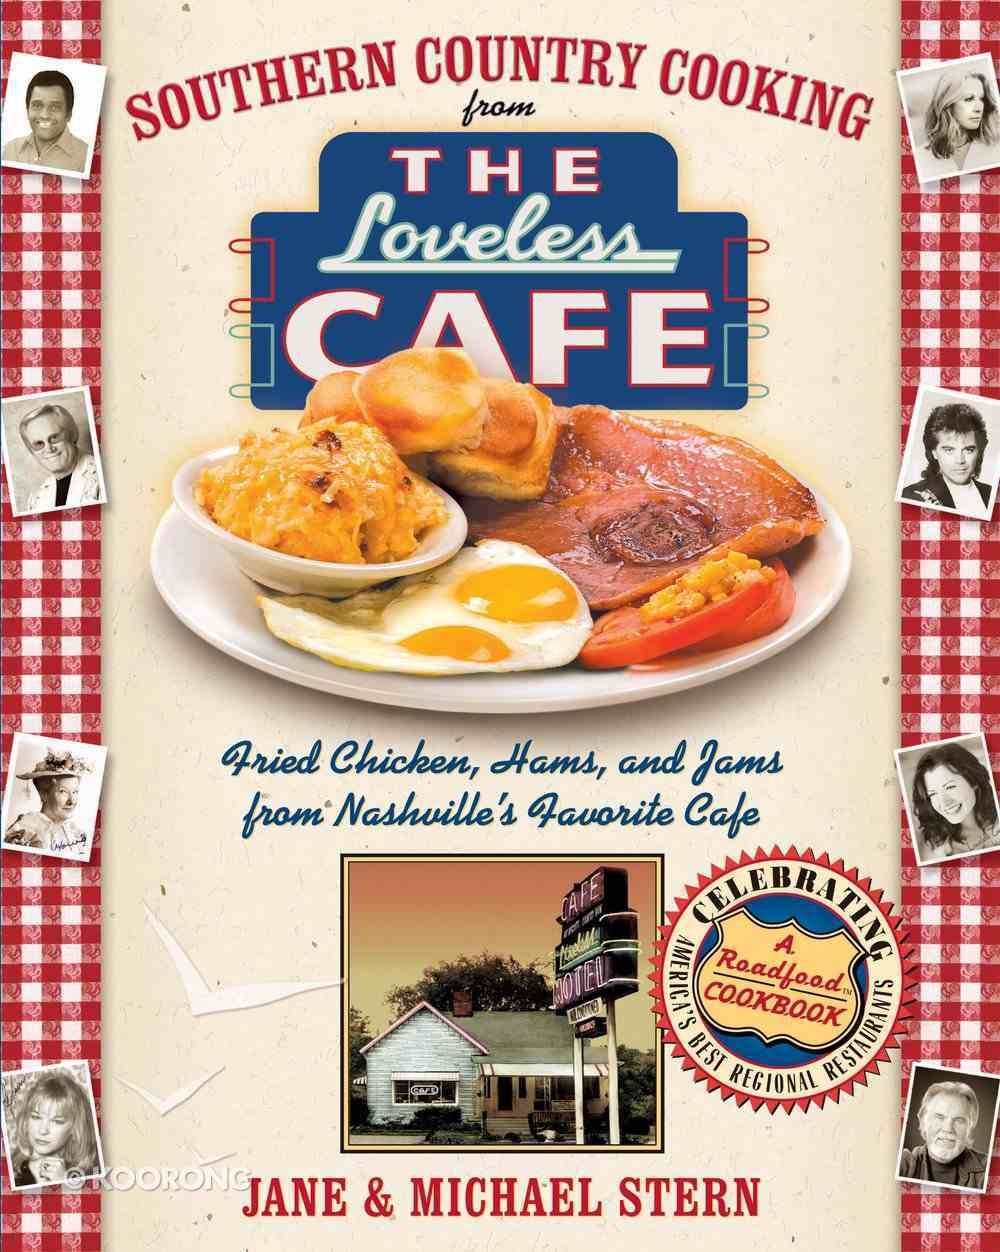 Southern Country Cooking From the Loveless Cafe eBook